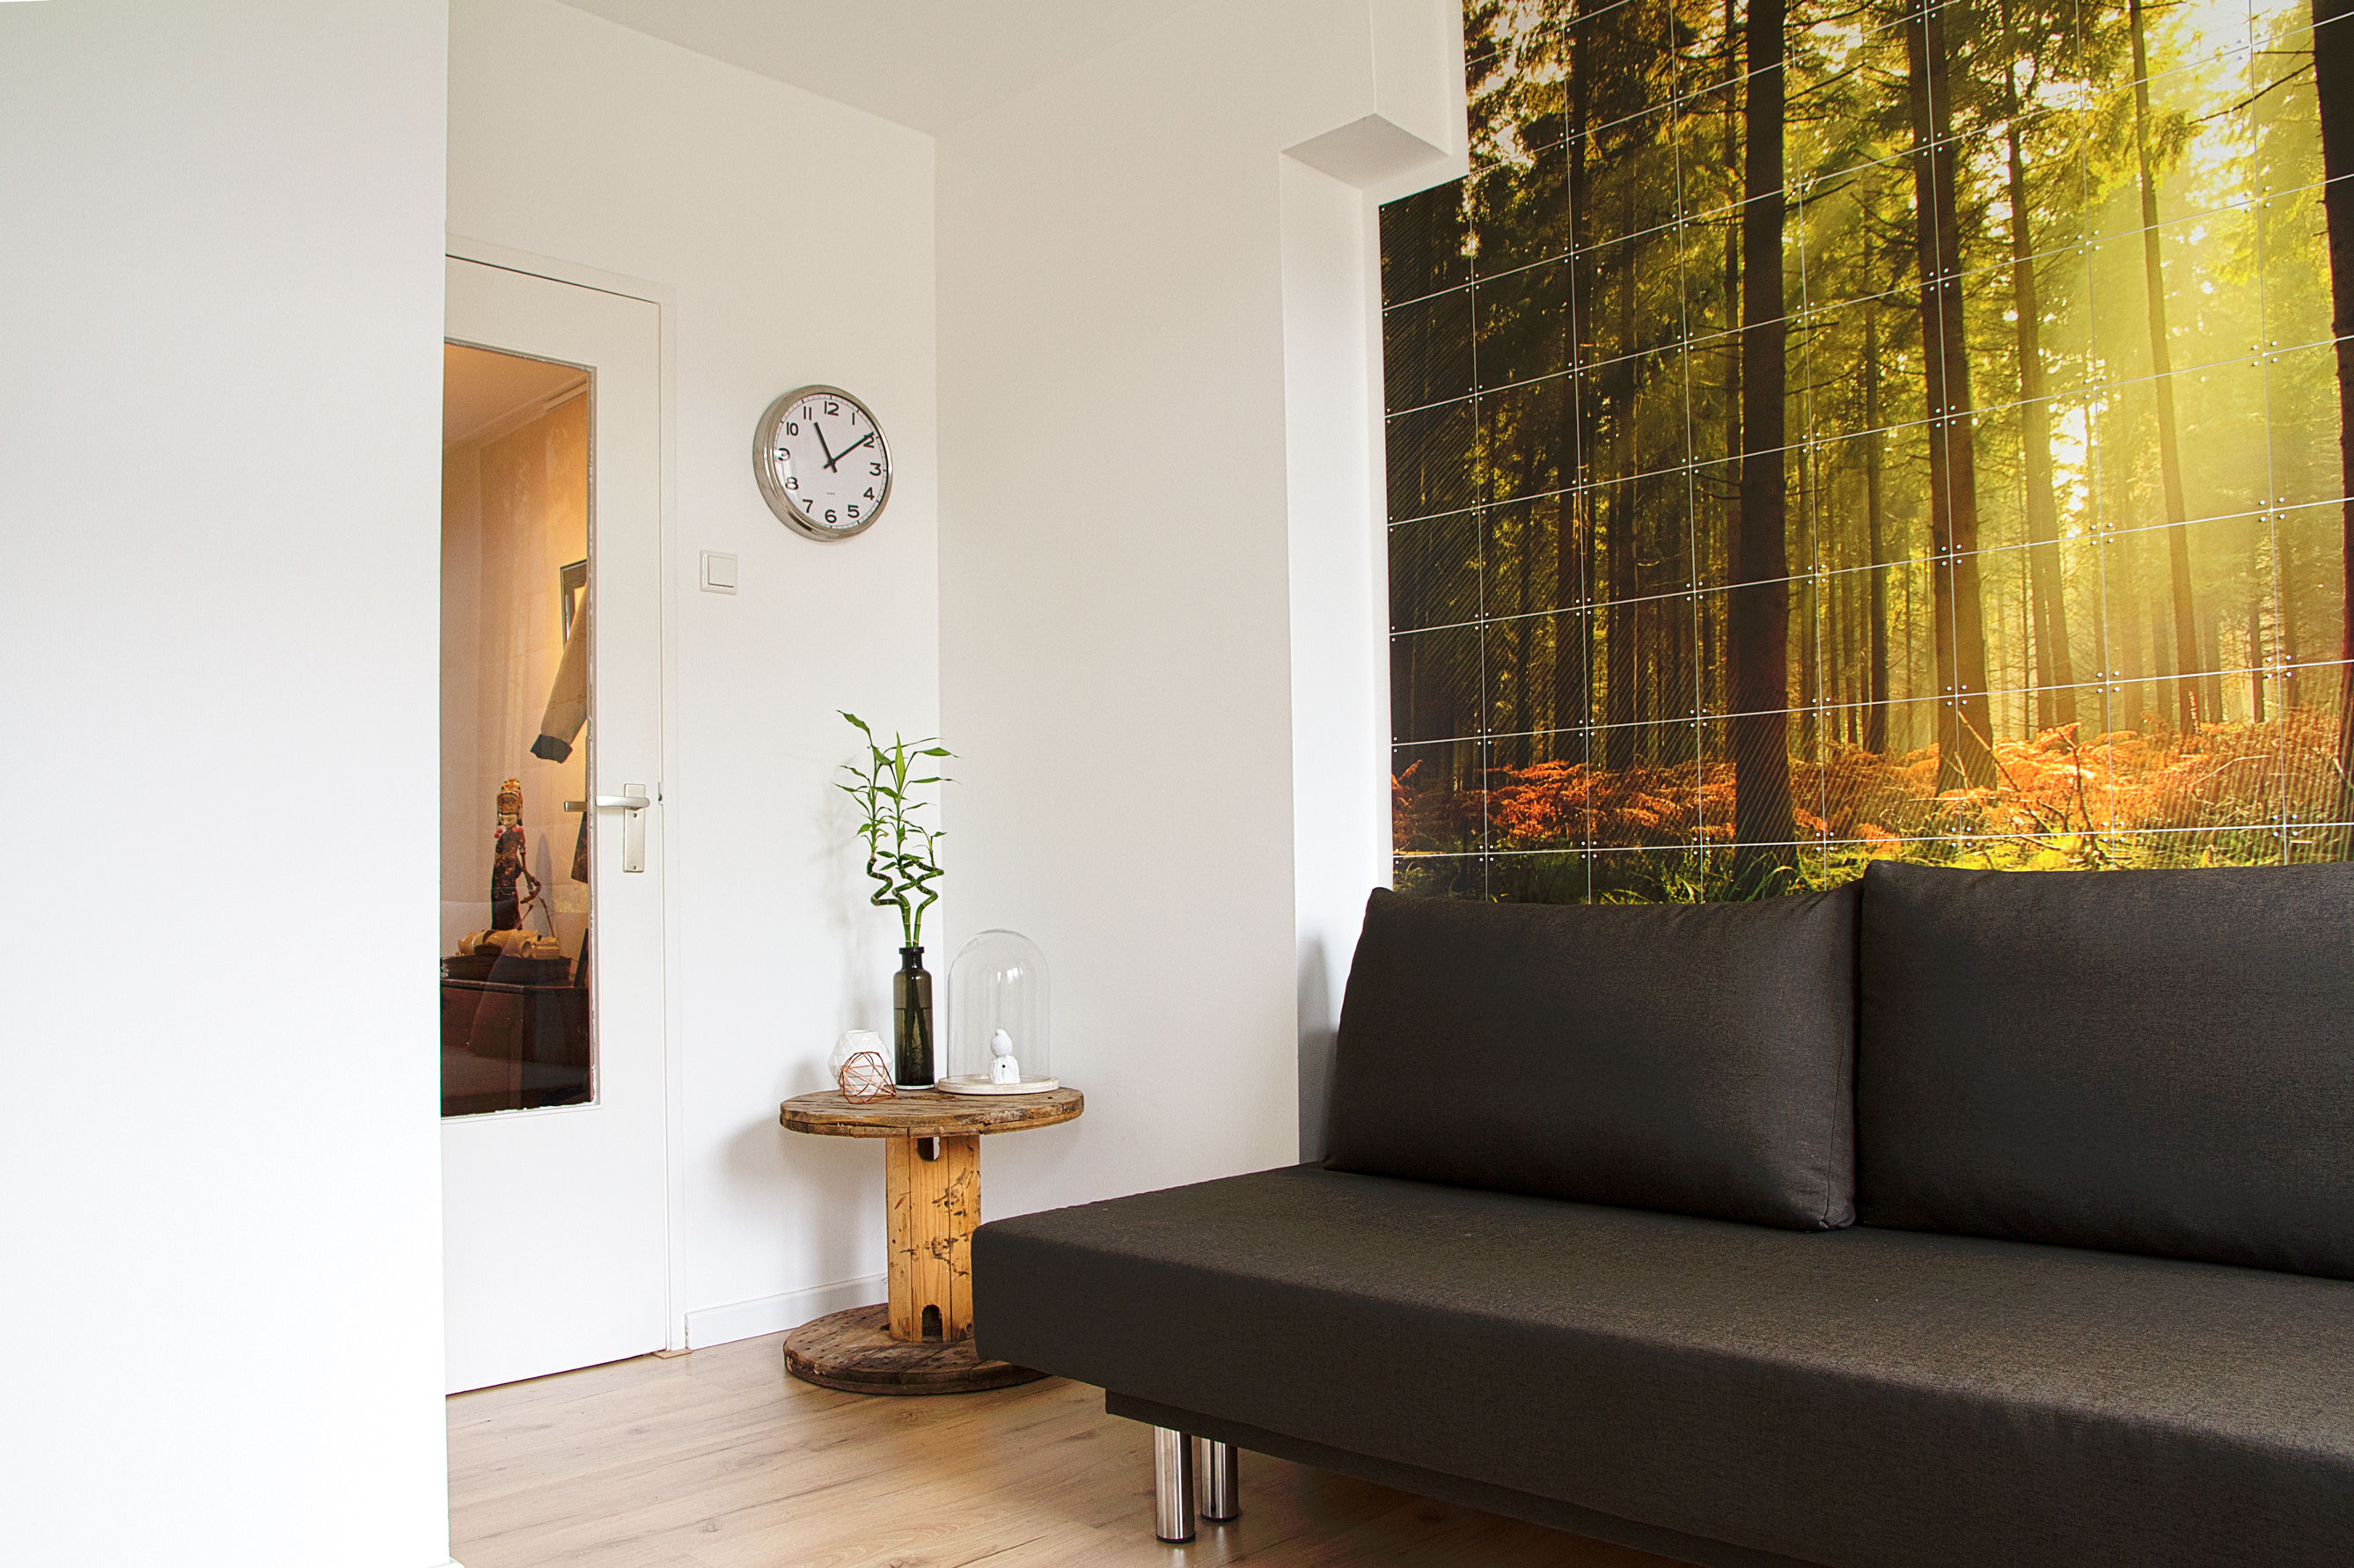 Lise – interieur amsterdams appartement